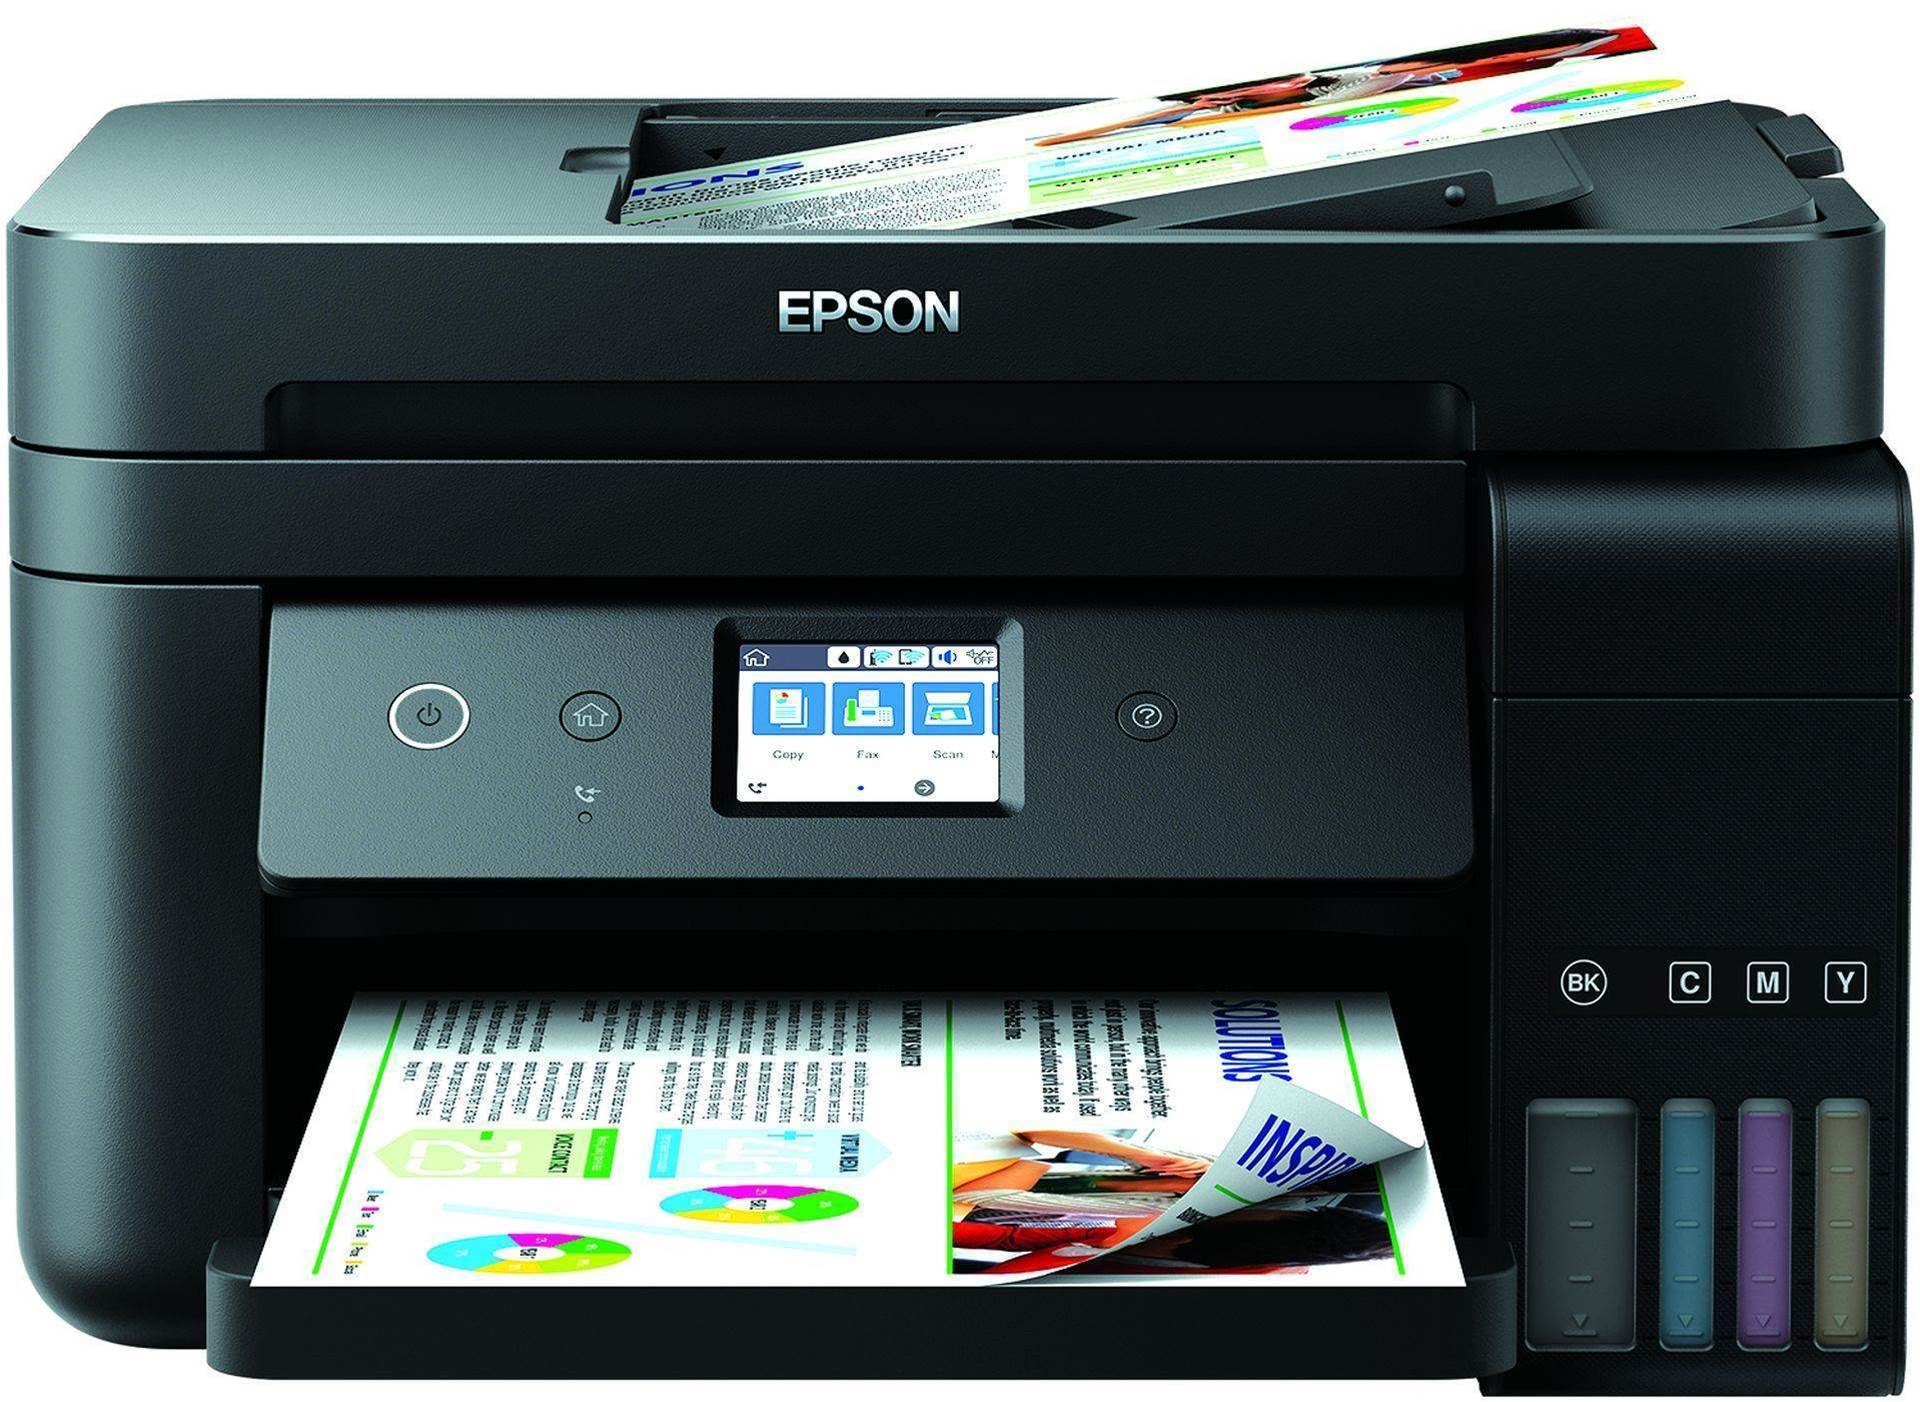 Review: Epson EcoTank ET-4750 printer